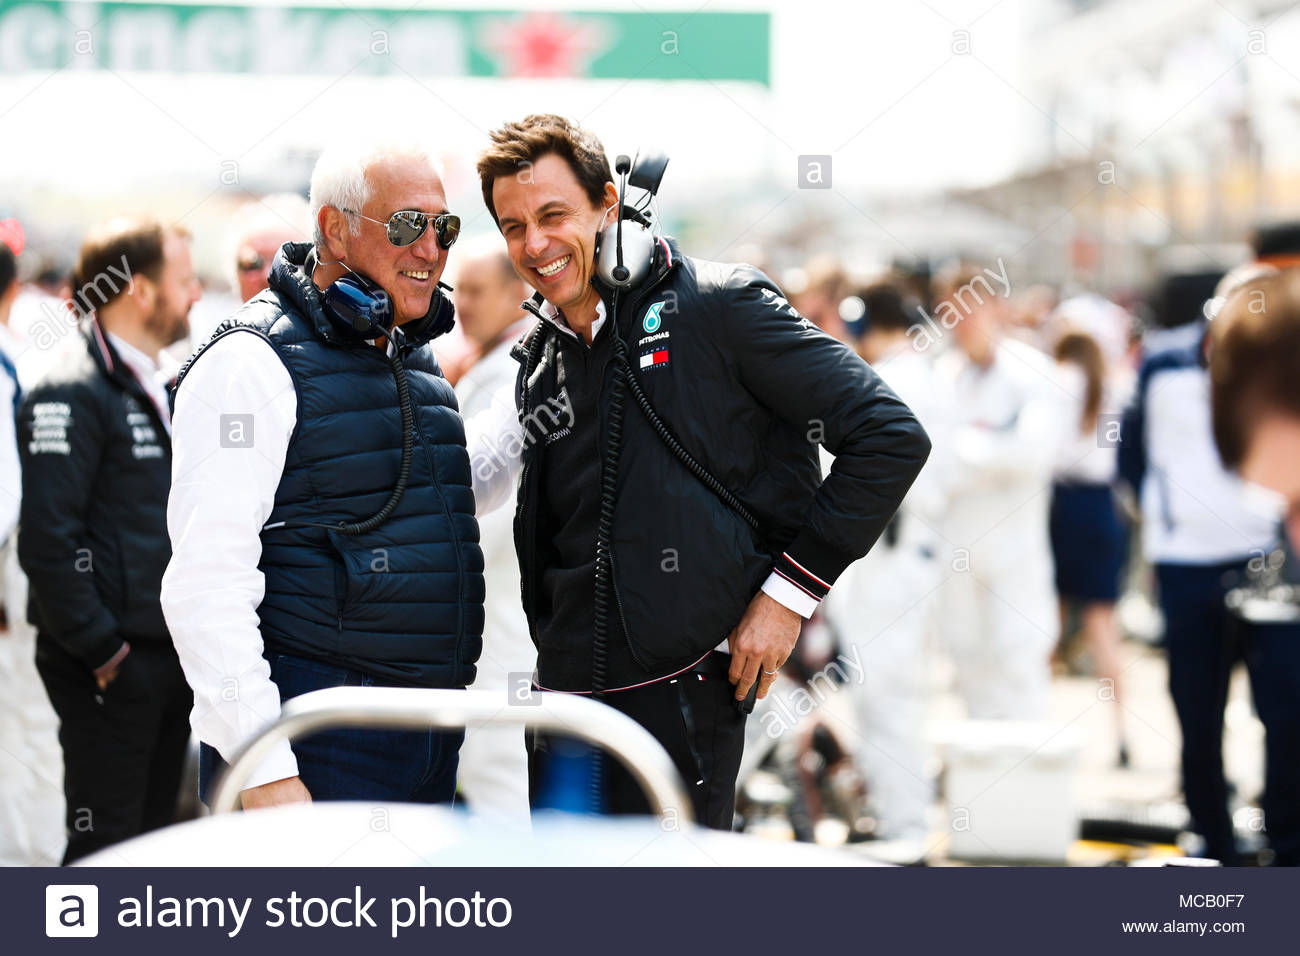 Toto Wolff Stock Photos & Toto Wolff Stock Images - Alamy